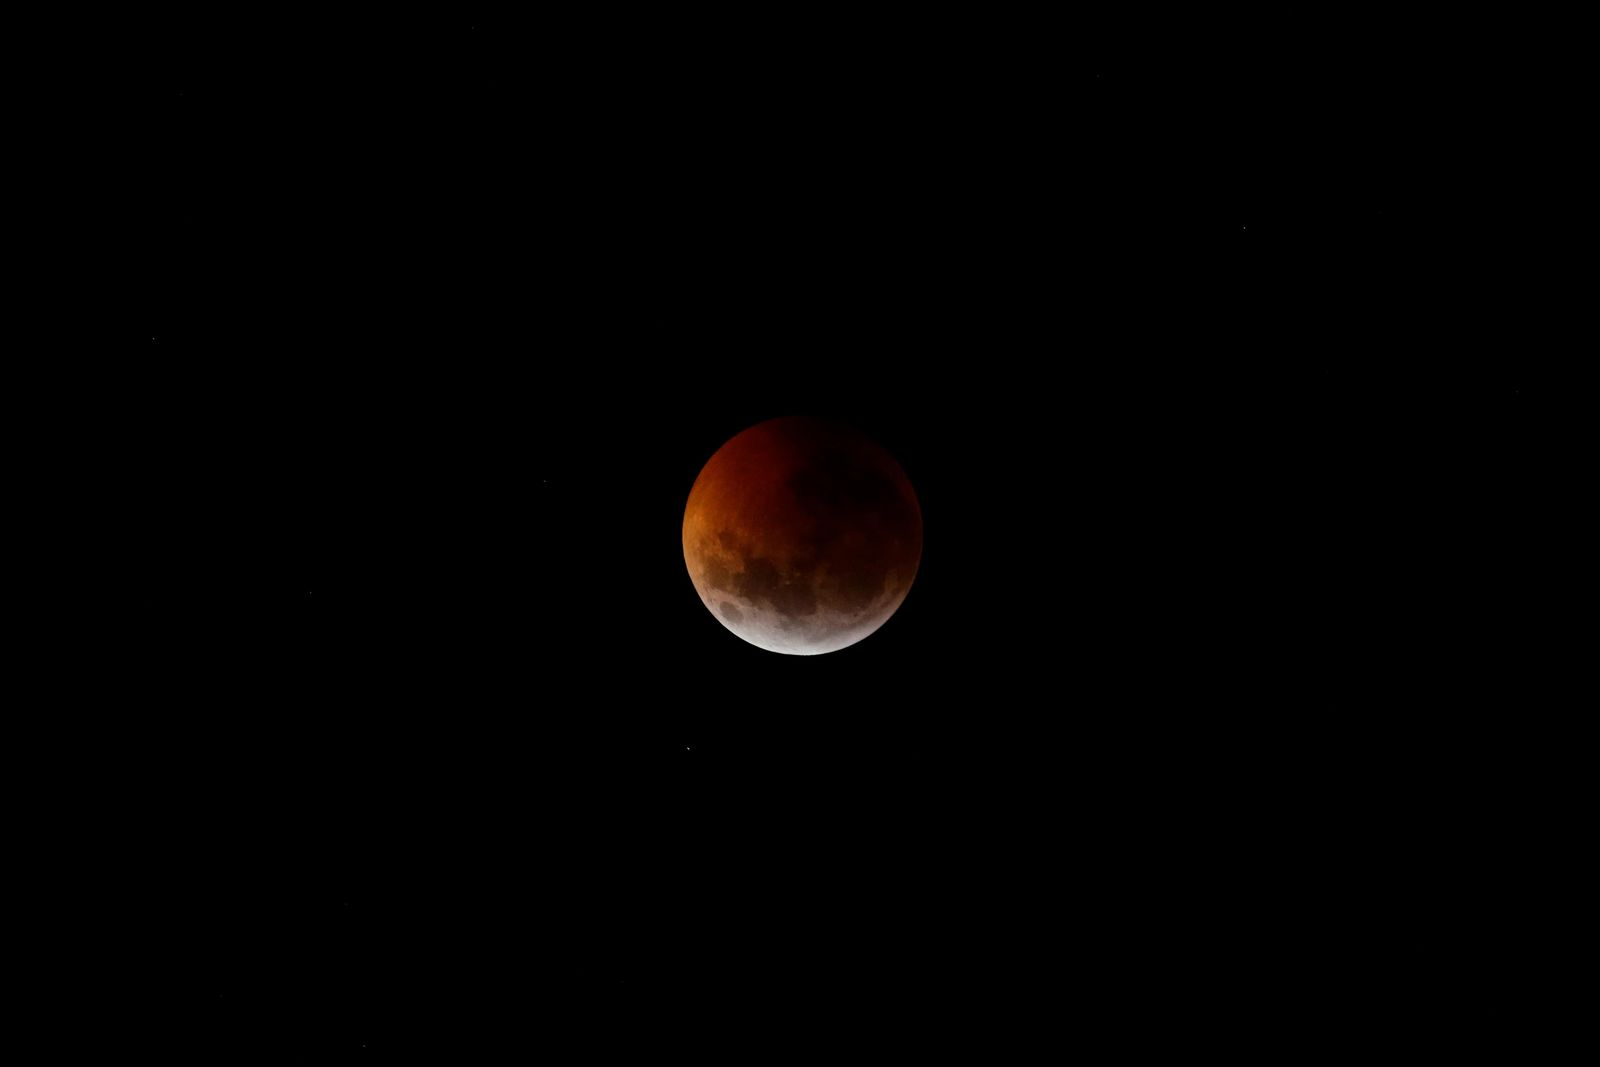 This photo shows the moon partially covered during a total lunar eclipse seen over Asuncion, Paraguay, Monday, Jan. 21, 2019. The entire eclipse will exceed three hours. Totality - when the moon's completely bathed in Earth's shadow - will last an hour. Expect the eclipsed, or blood moon, to turn red from sunlight scattering off Earth's atmosphere. (AP Photo/Jorge Saenz)